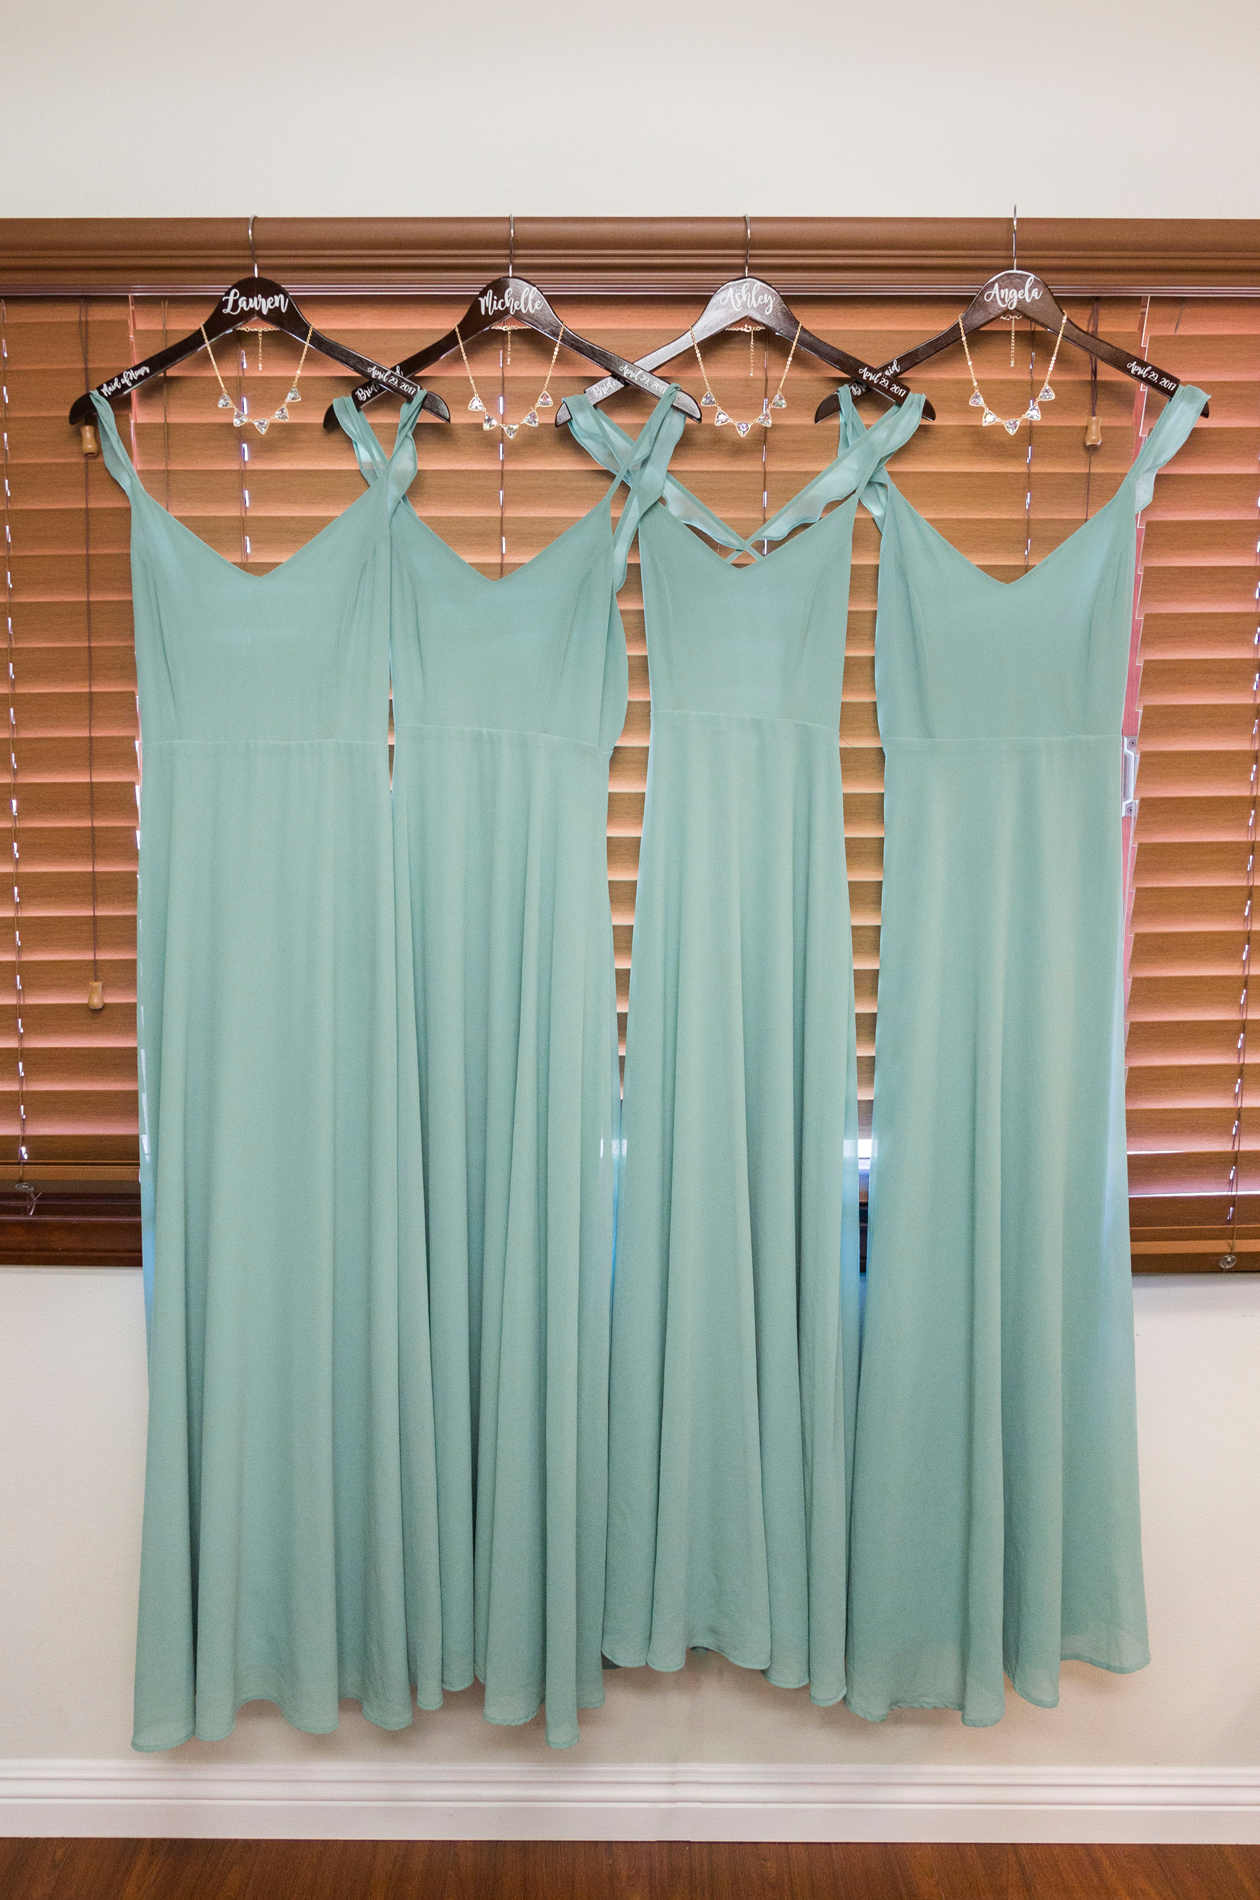 Turquoise Bridesmaid Dresses - A McCoy Equestrian Center Wedding - Peterson Design & Photography